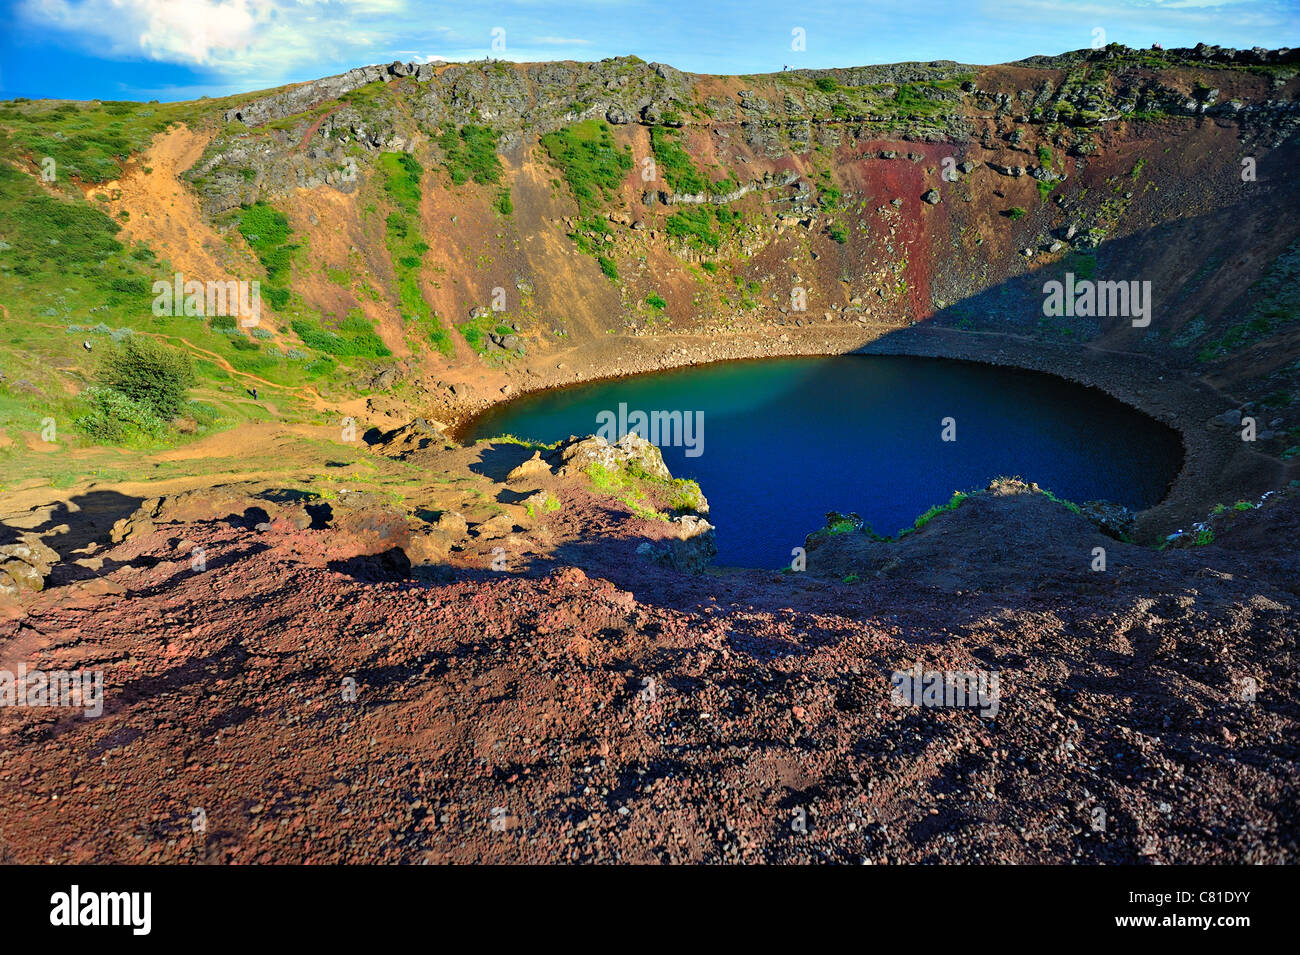 Kerid volcanic crater lake Grimsnes area of Iceland Unrecognizable people along caldera and climbing give senseStock Photo